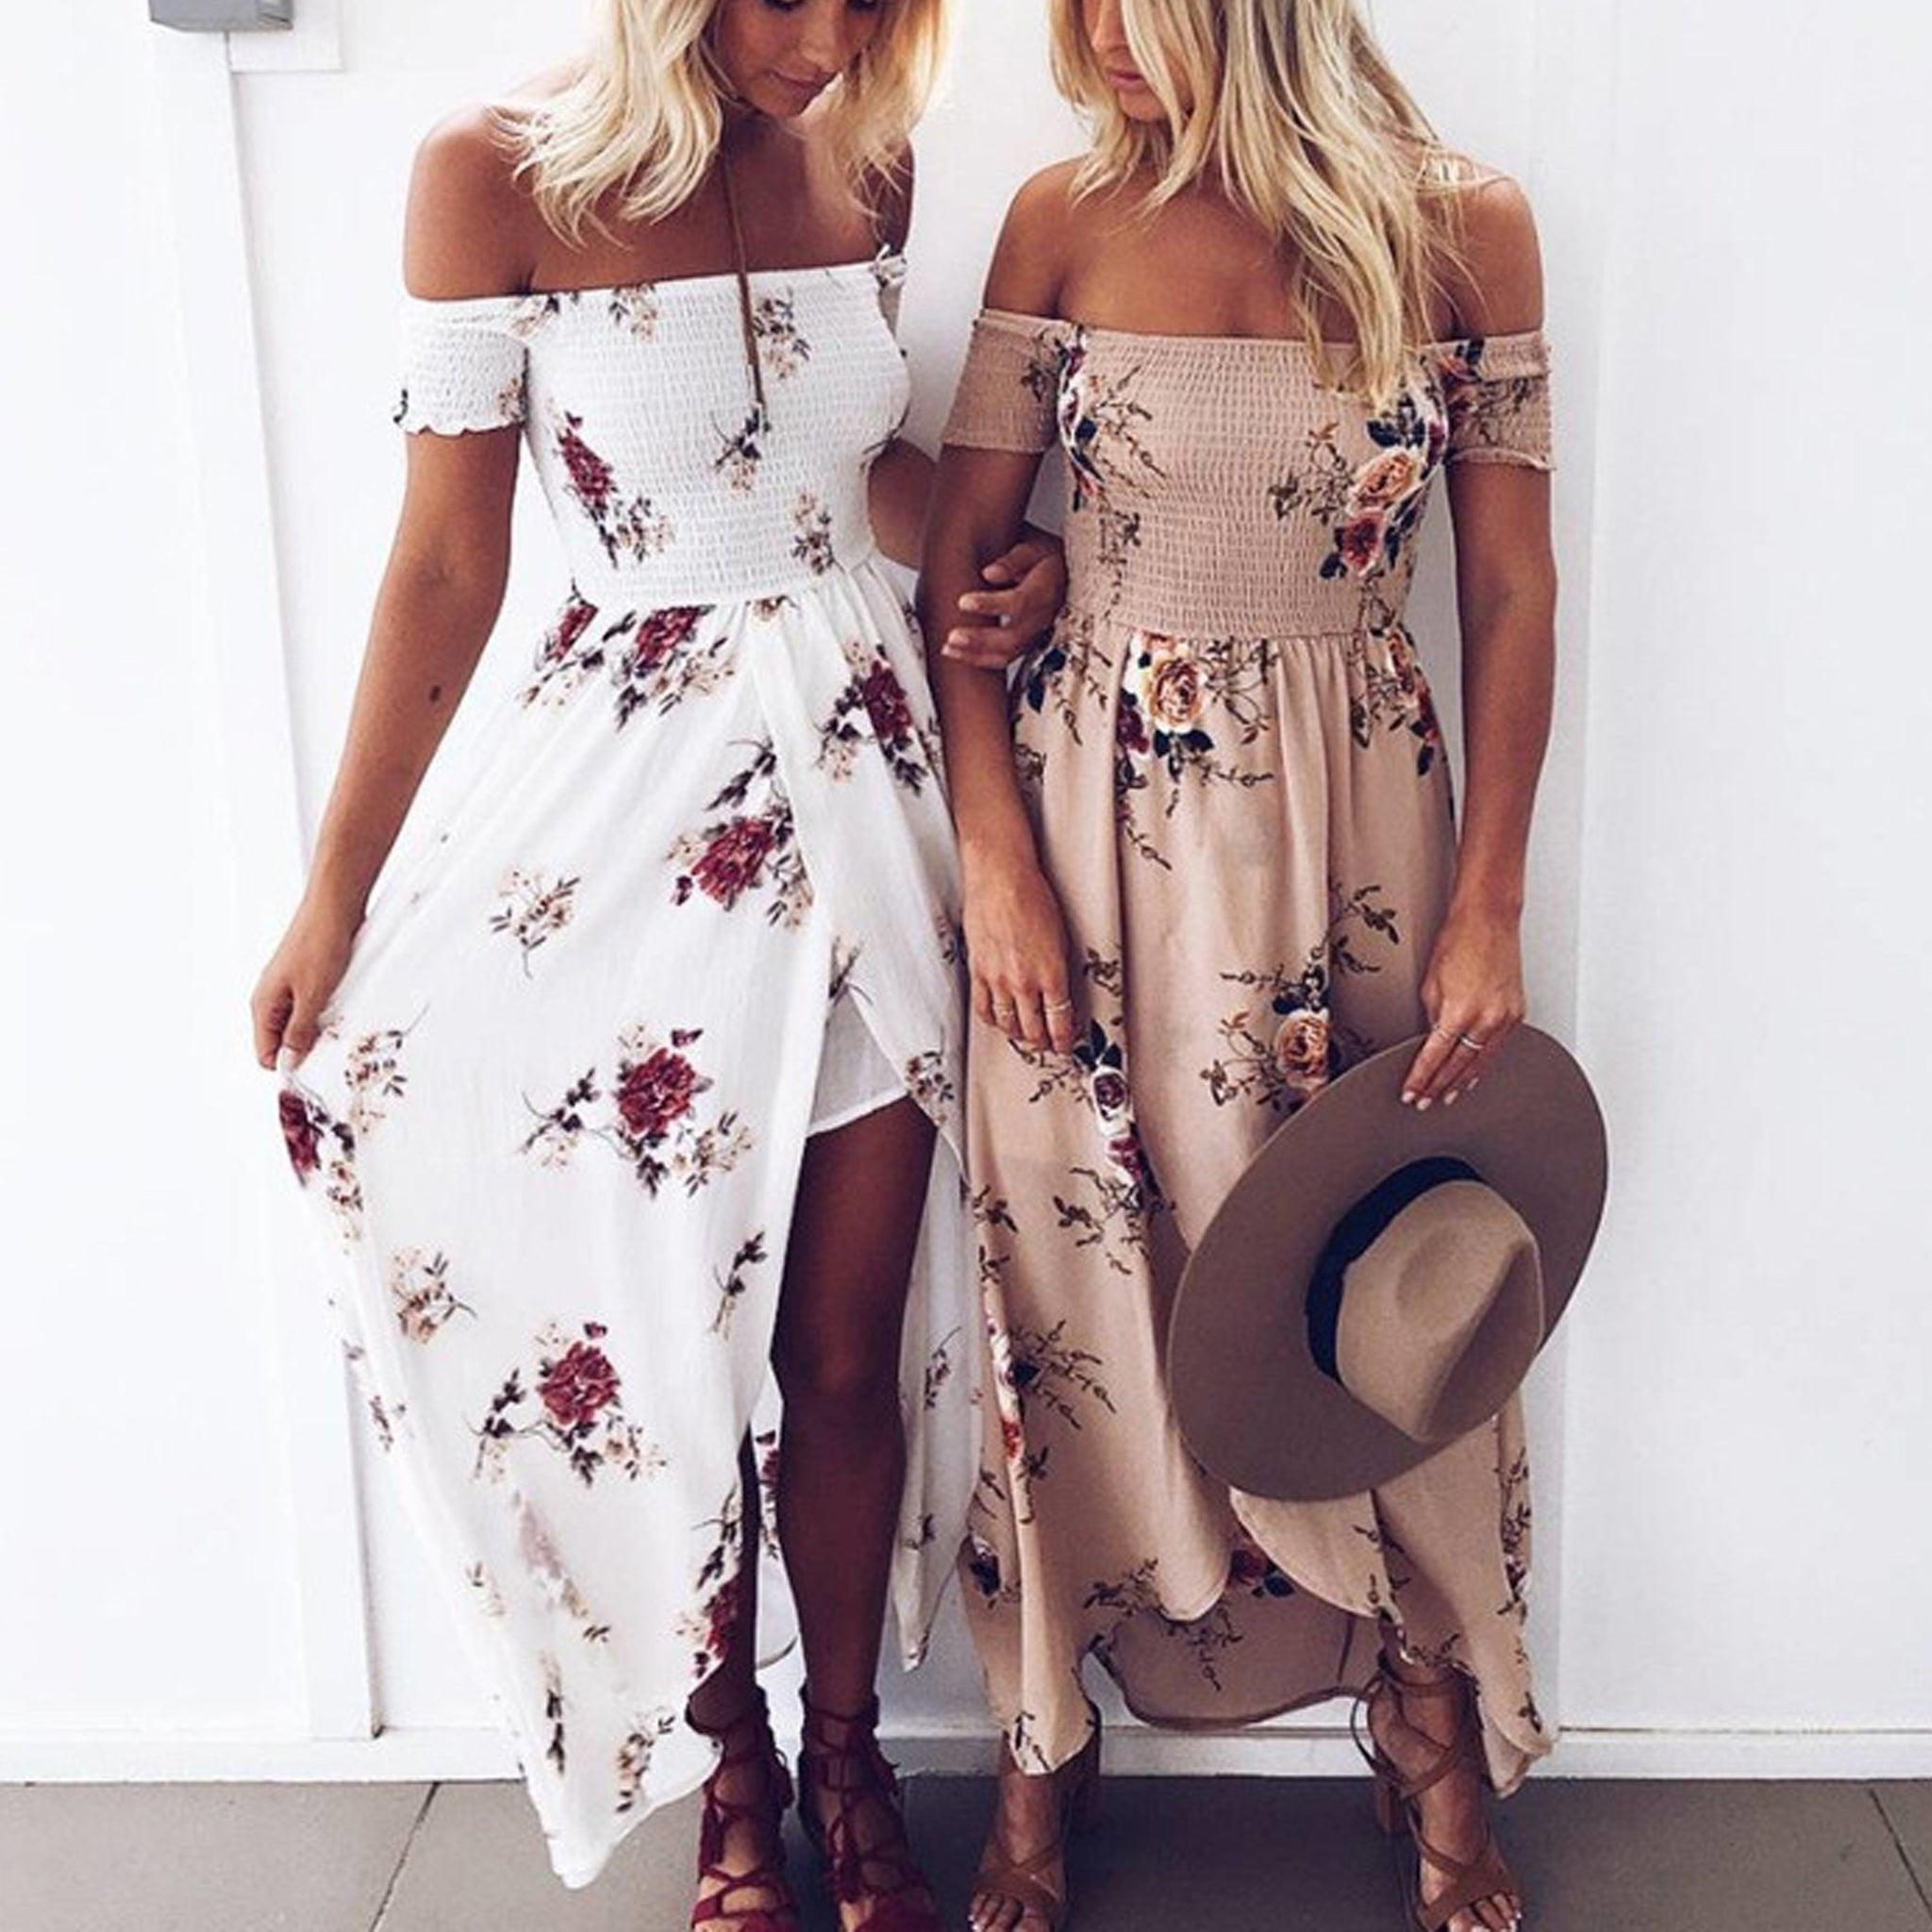 Ladies Summer Casual Cold Shoulder Vintage Beach Dress ❤Womens Floral Printed Maxi Dresses